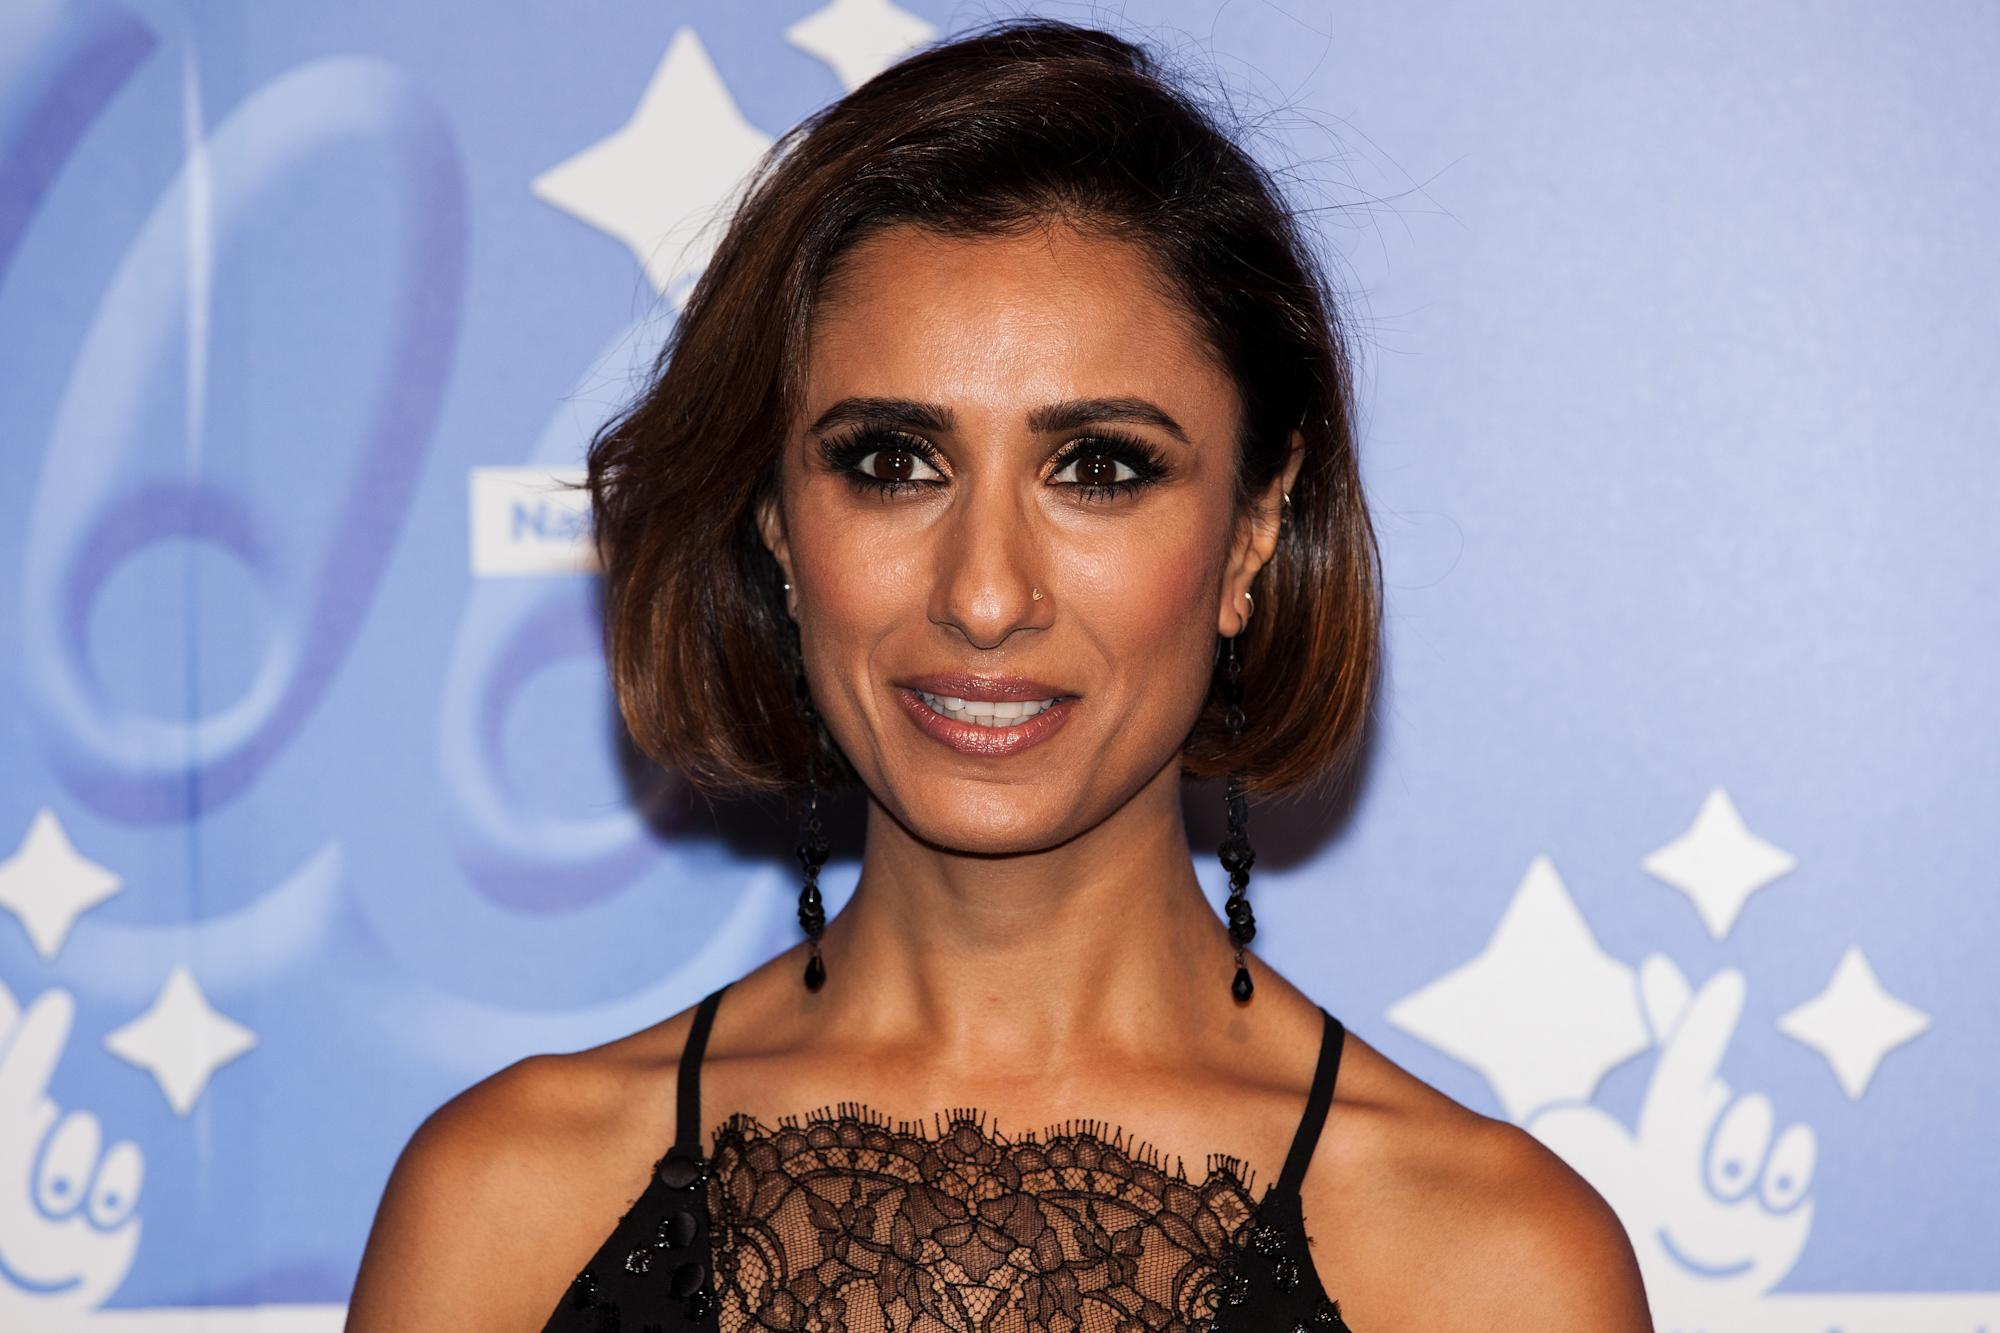 Anita Rani shares her experience of racism and being called the P-word in a work environment